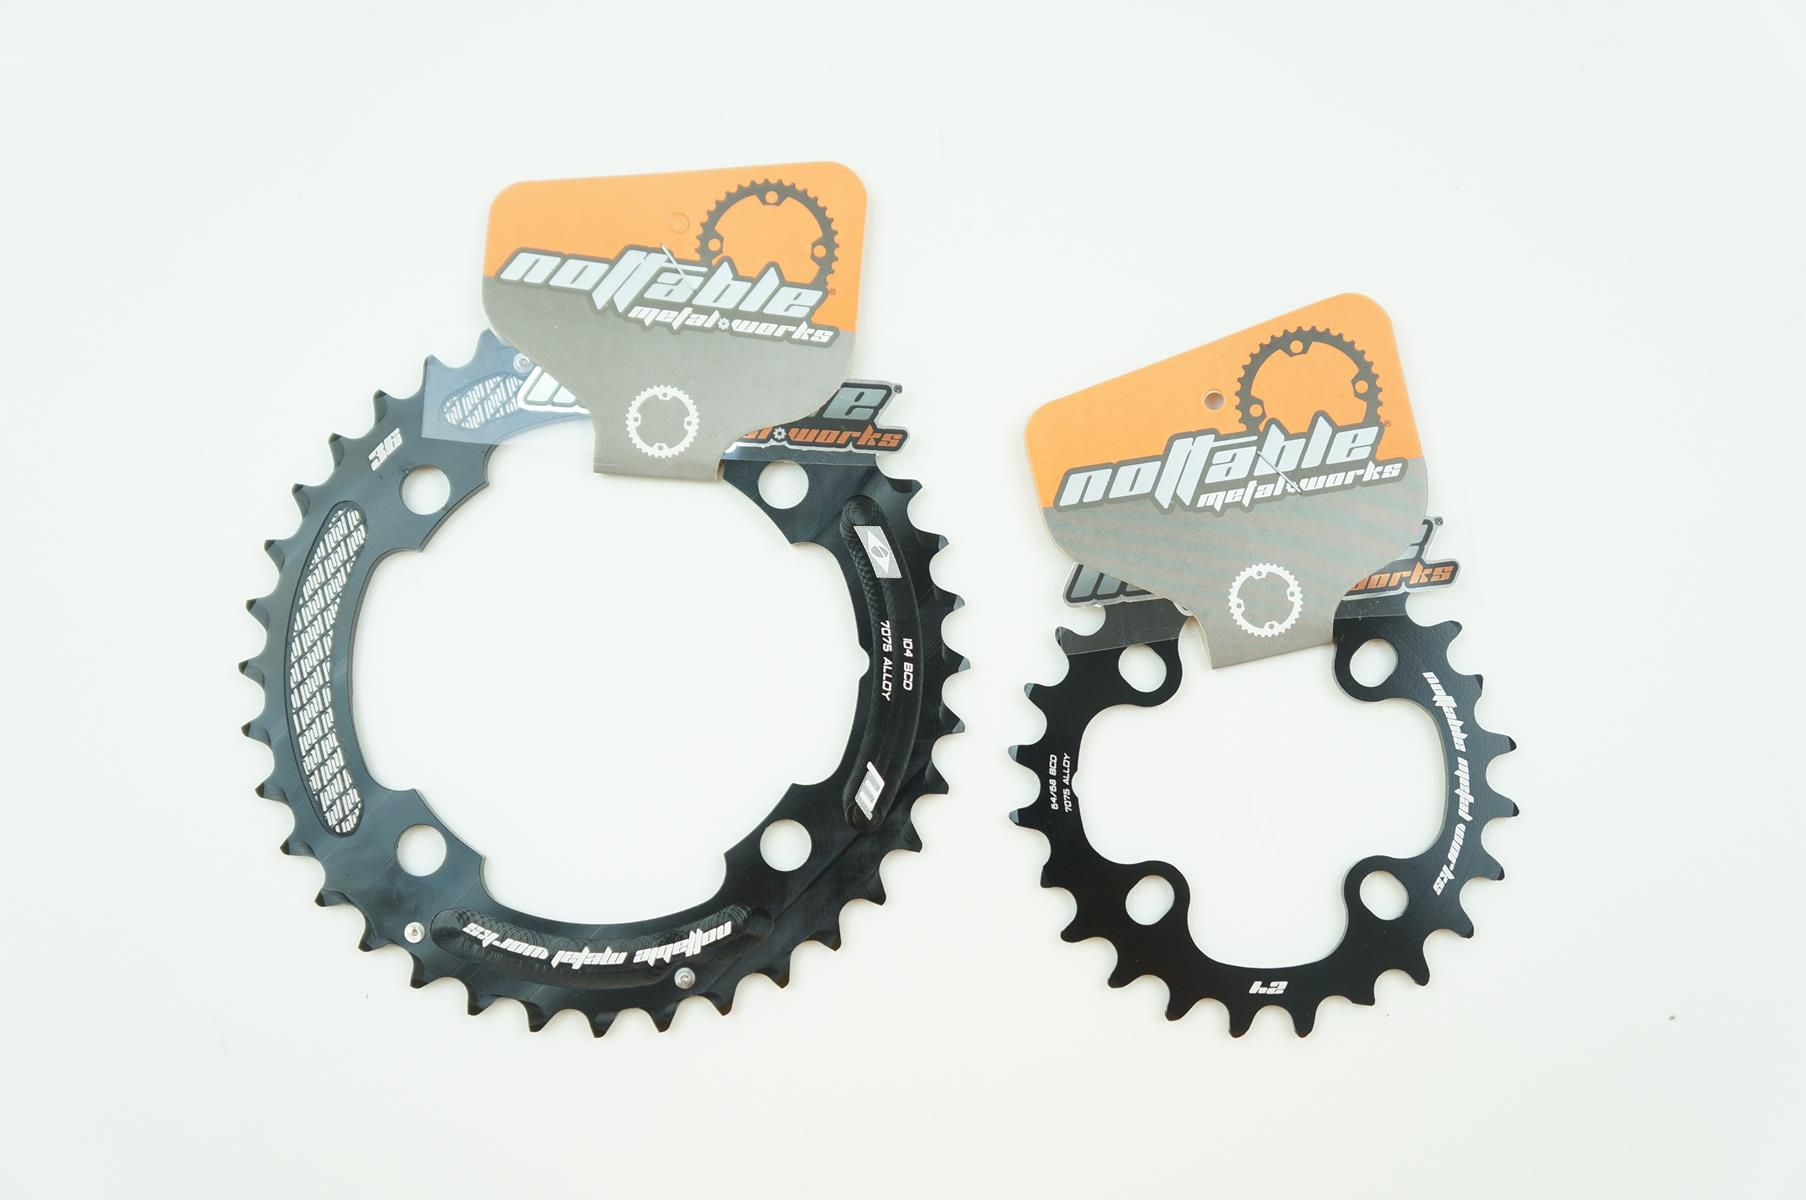 Coroas Mtb Nottable 36 E 24t 2x10 Bcd 104mm Serve Em Sram Shimano